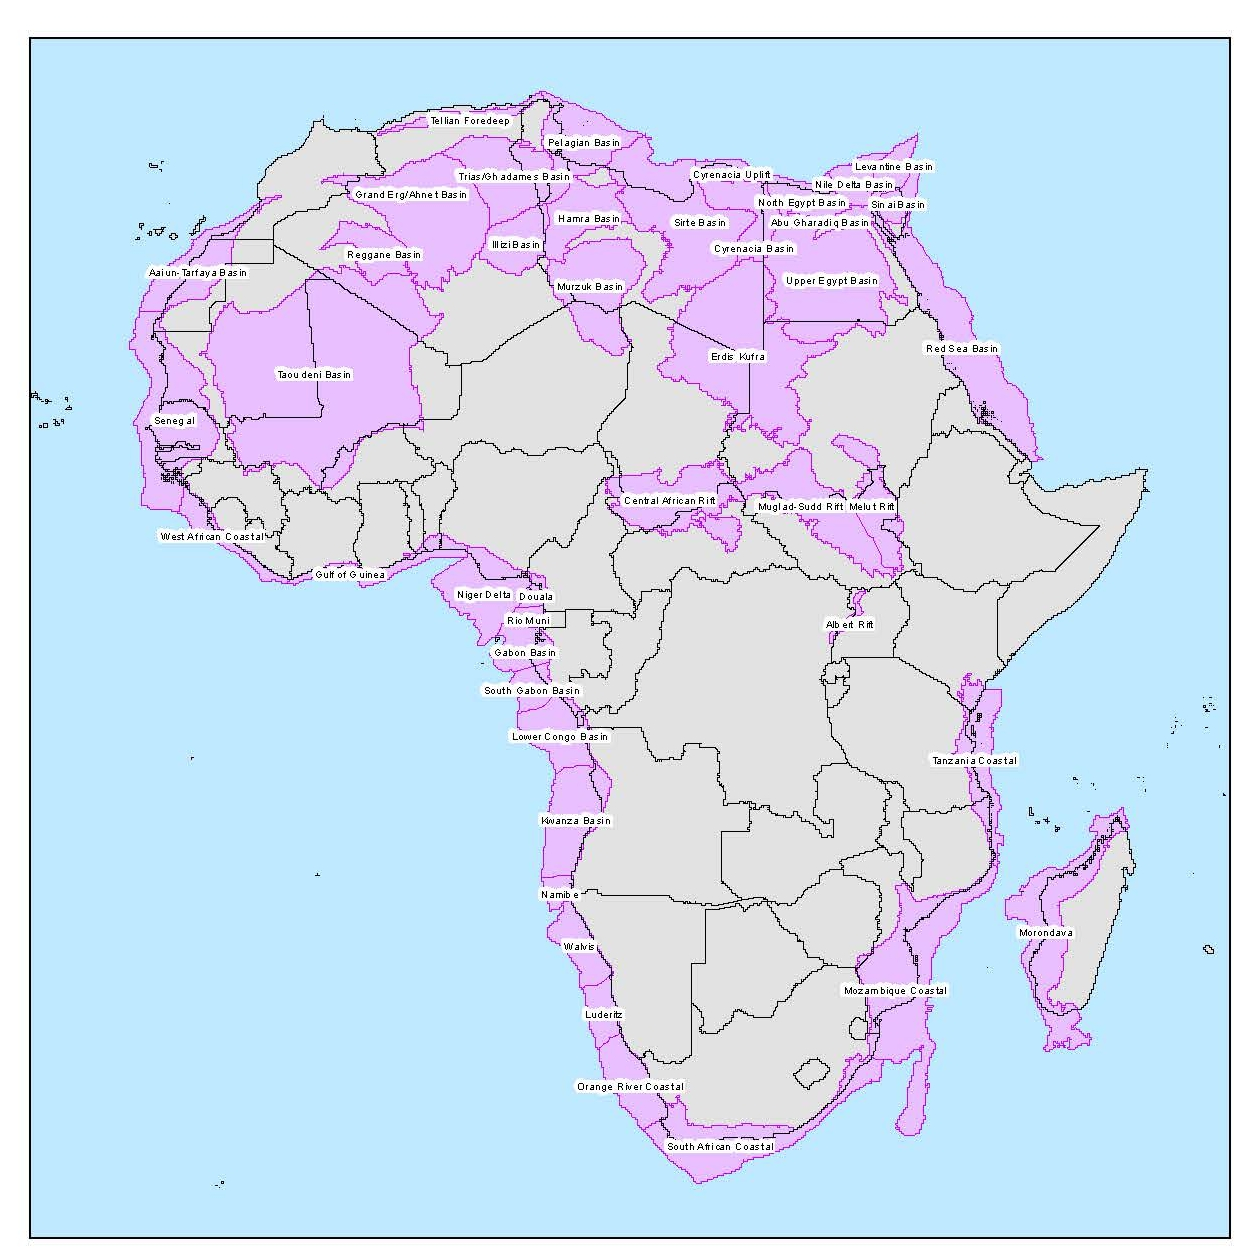 Africa main page 6x6.jpg